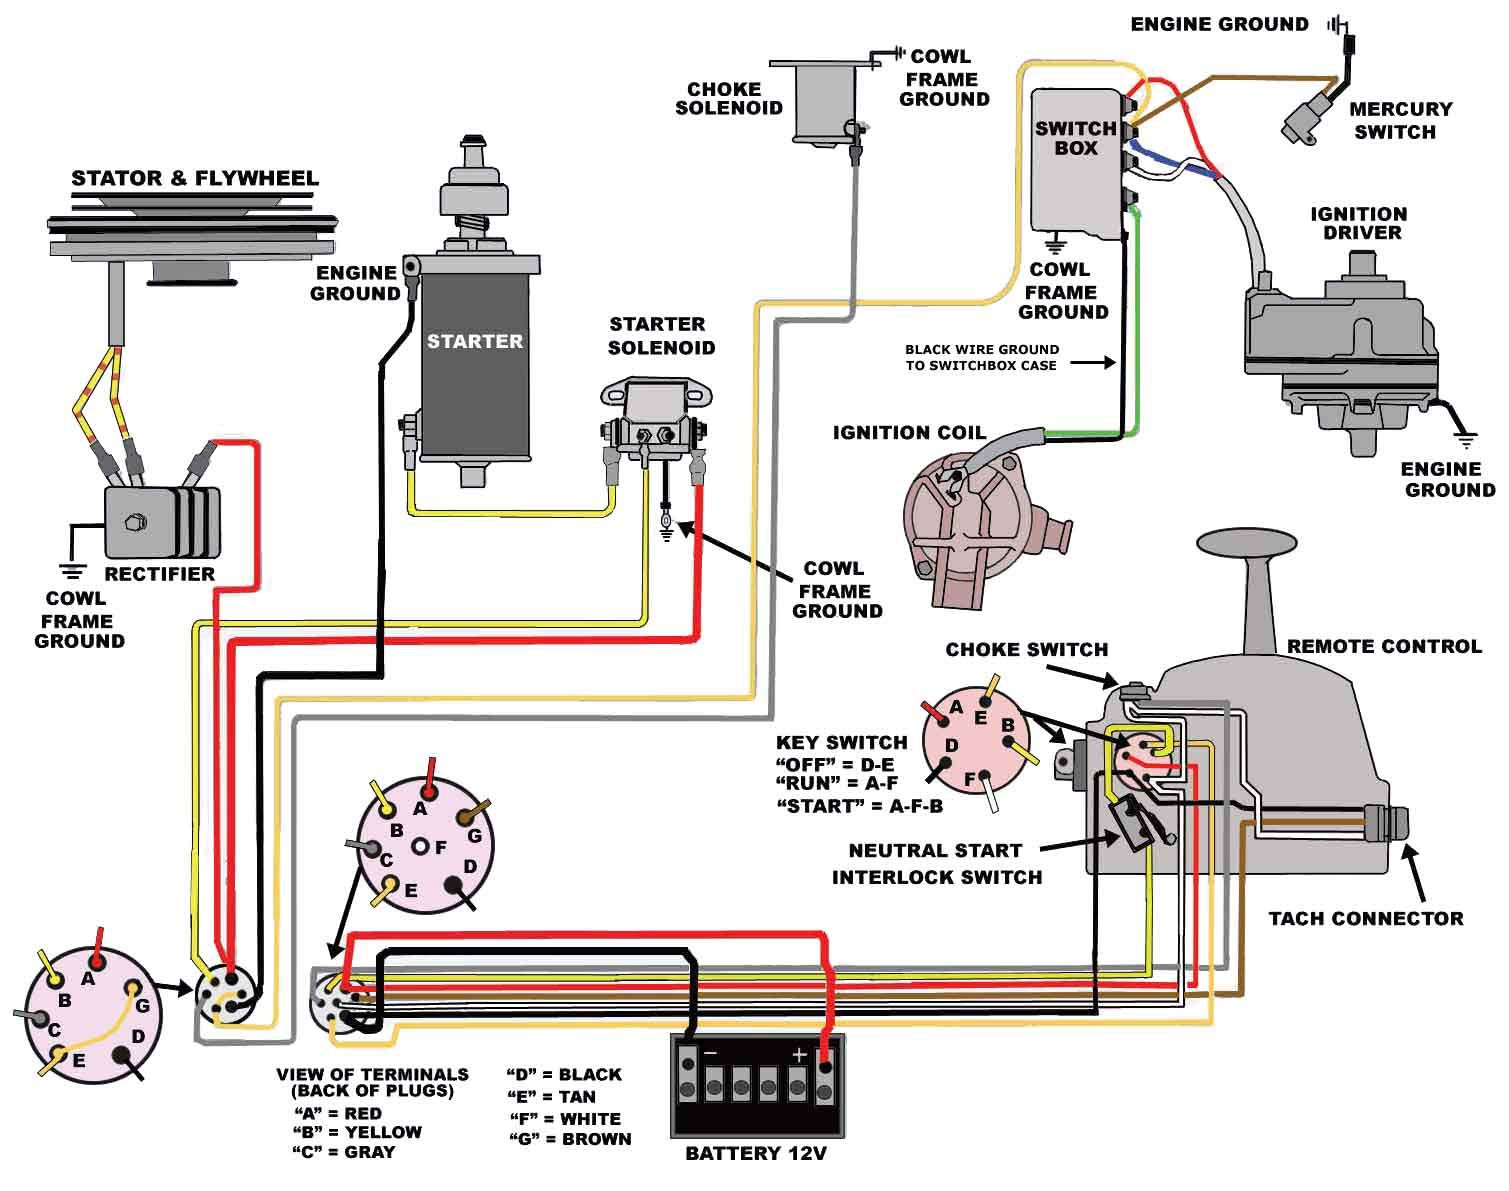 13cfb2d962bcd0c03103625817b7d51d mercury outboard wiring diagram diagram pinterest mercury switch box wiring diagram for mercury 90 at arjmand.co